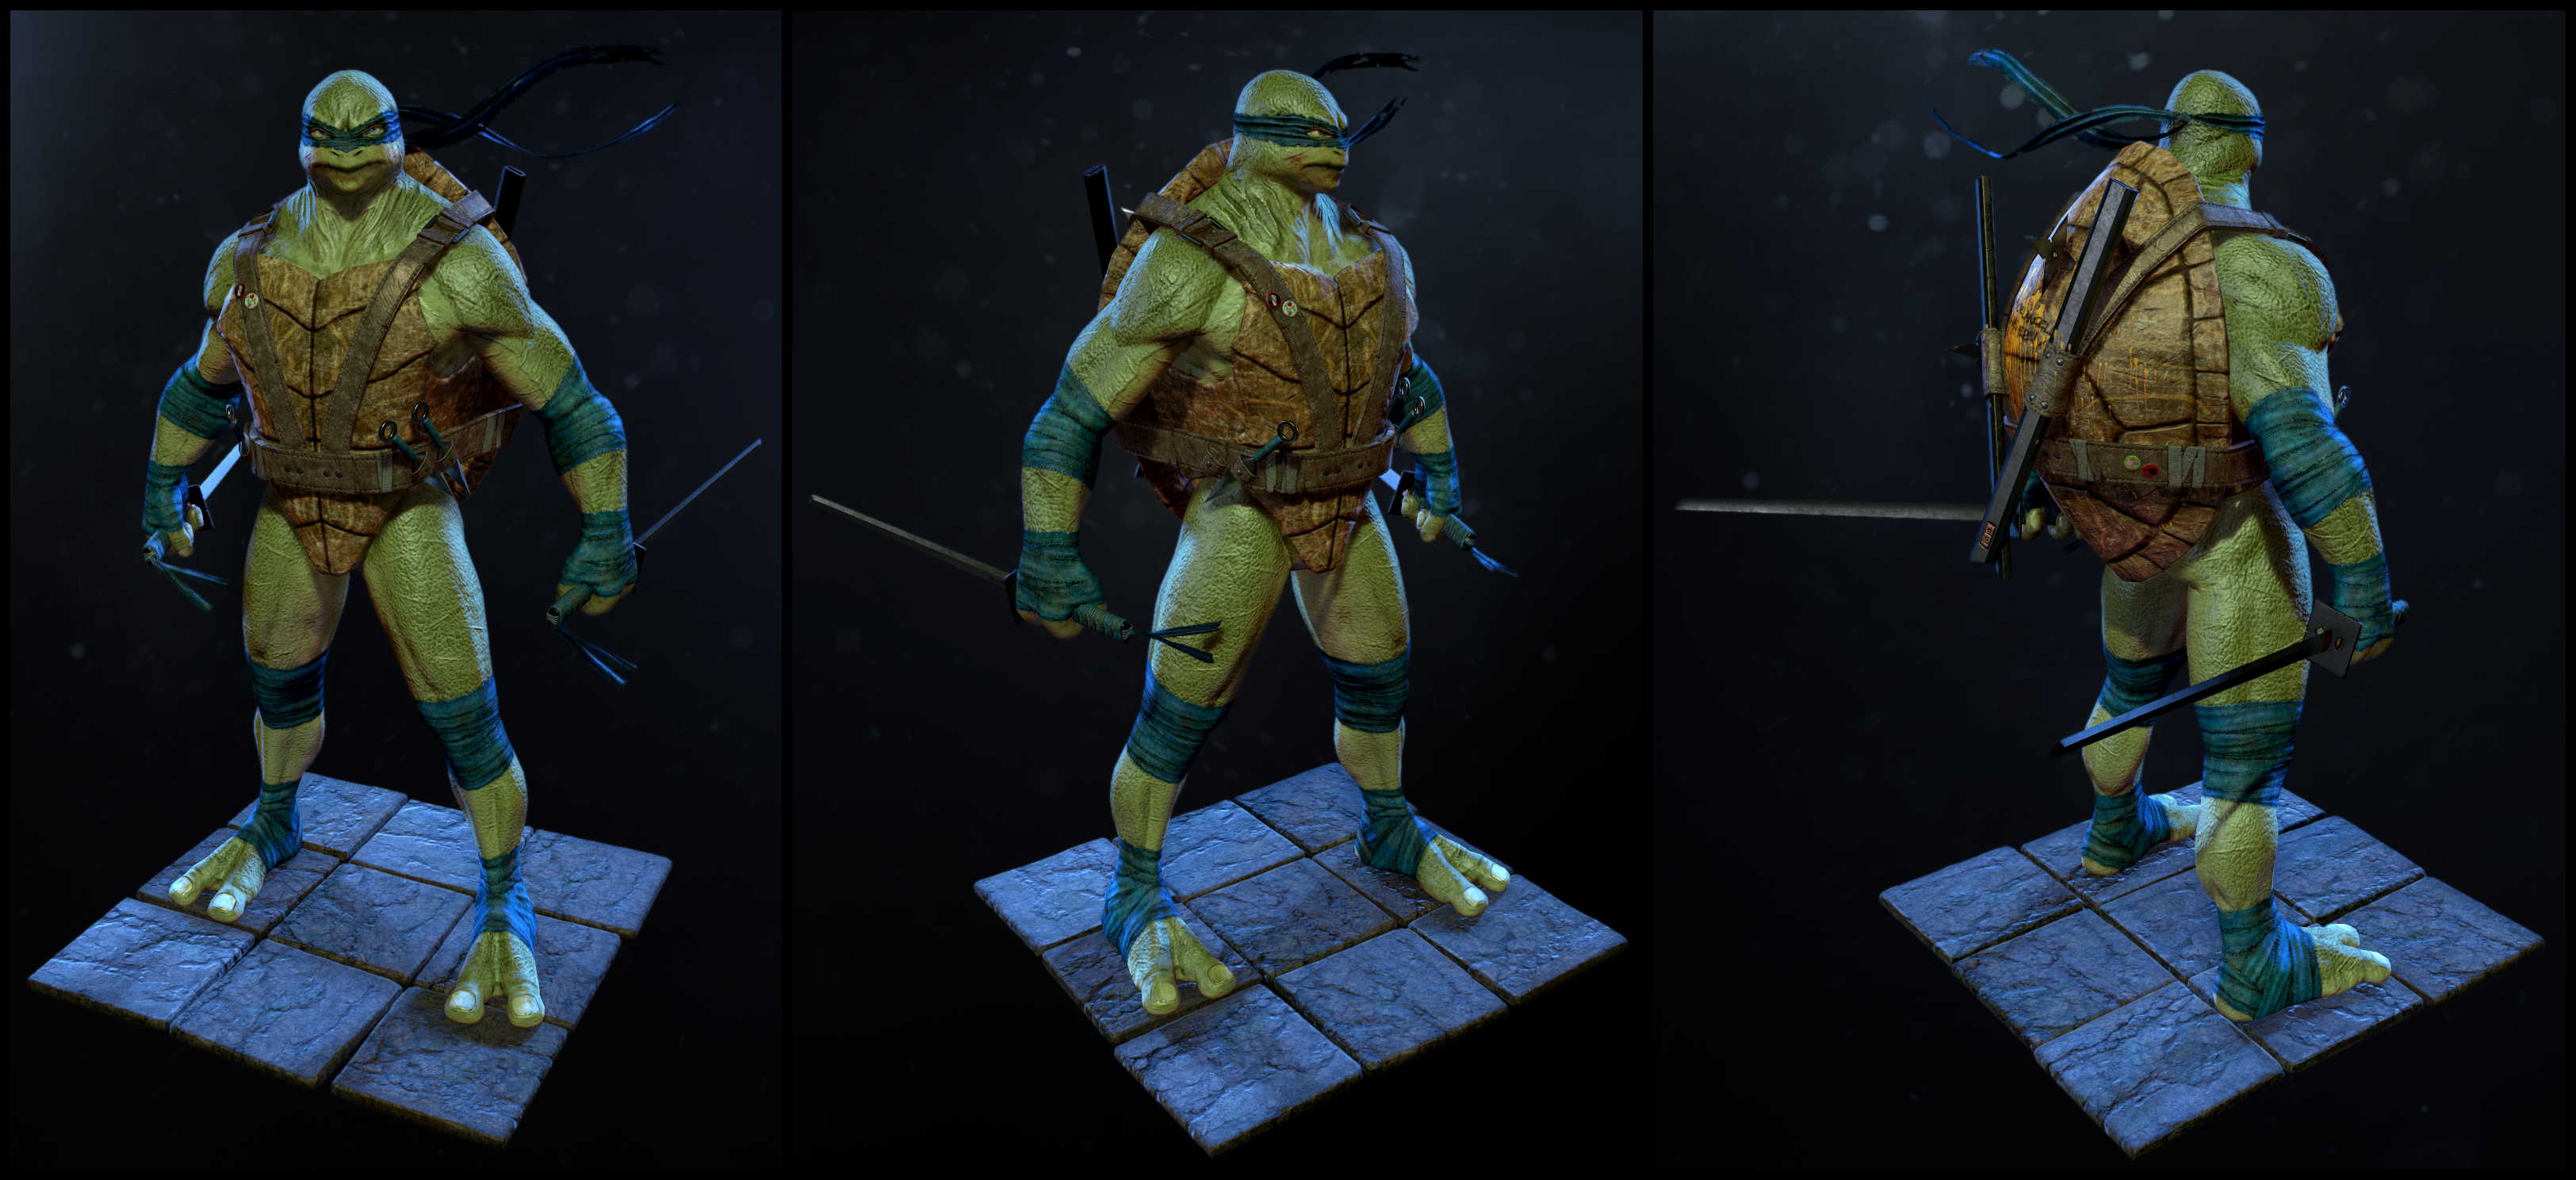 tmnt_leonardo___turnaround_by_j_l_art-d8320mj.png